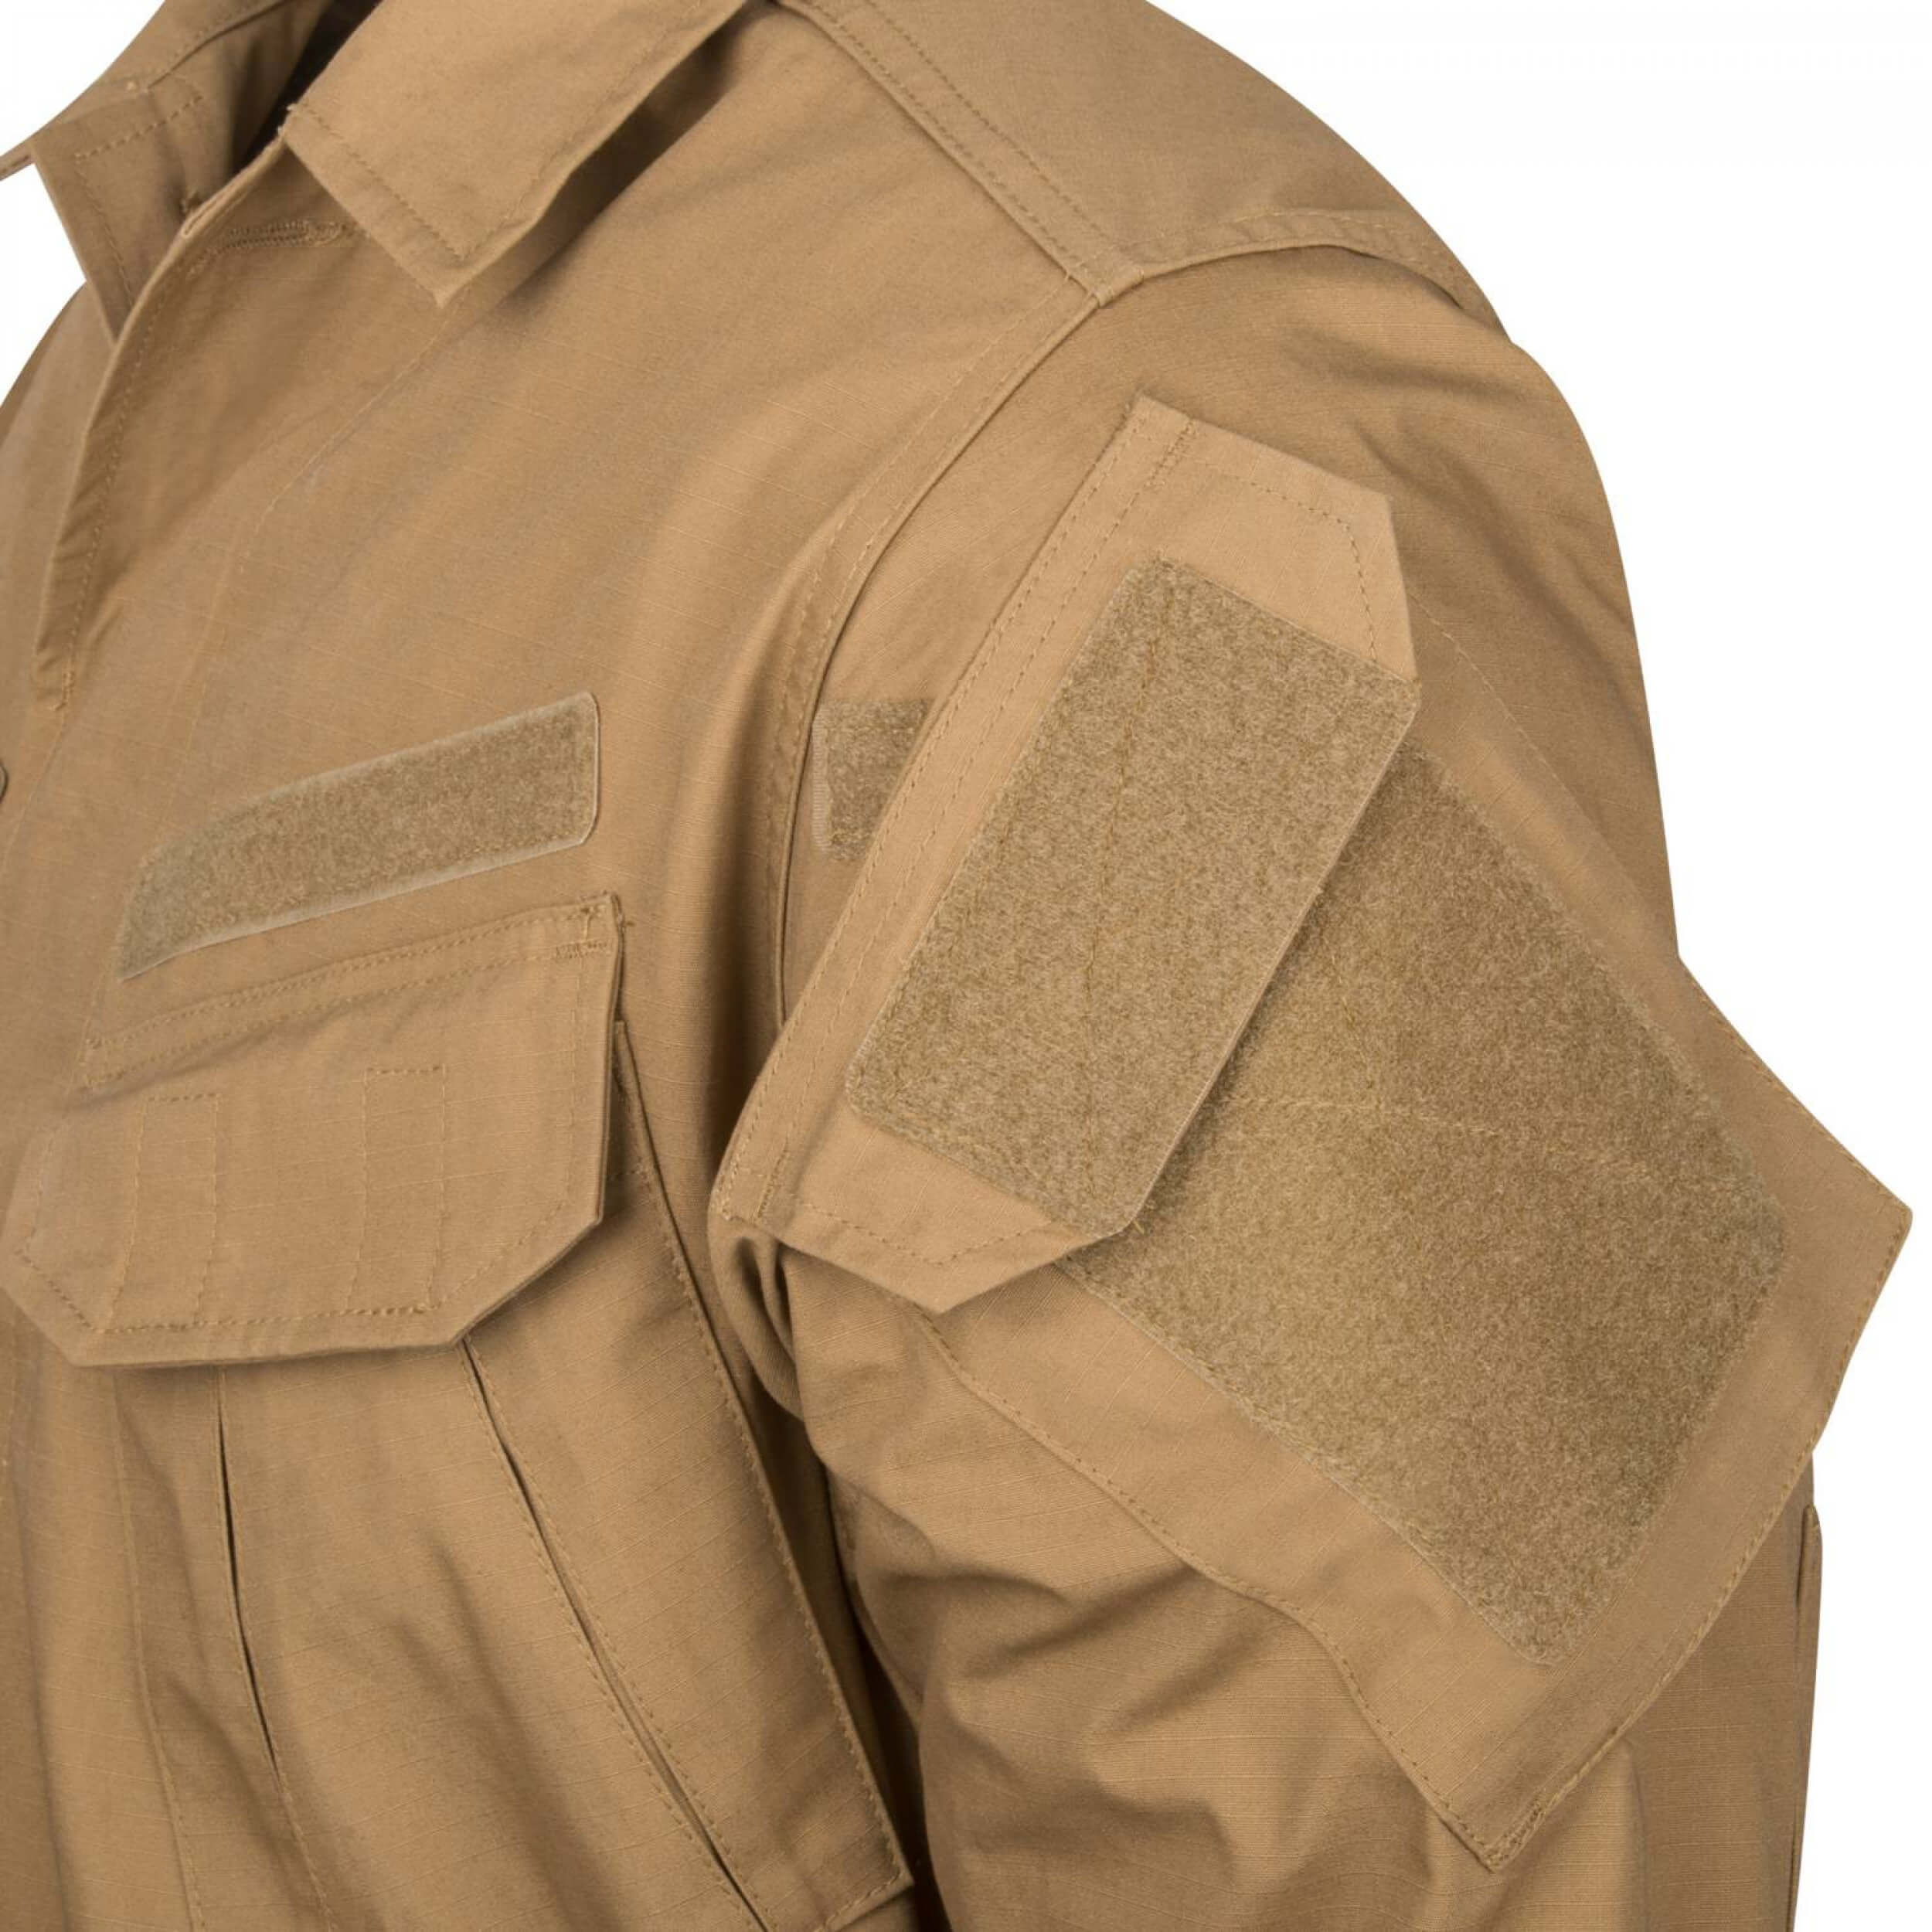 Helikon-Tex SFU Next Shirt - PolyCotton Ripstop - Coyote